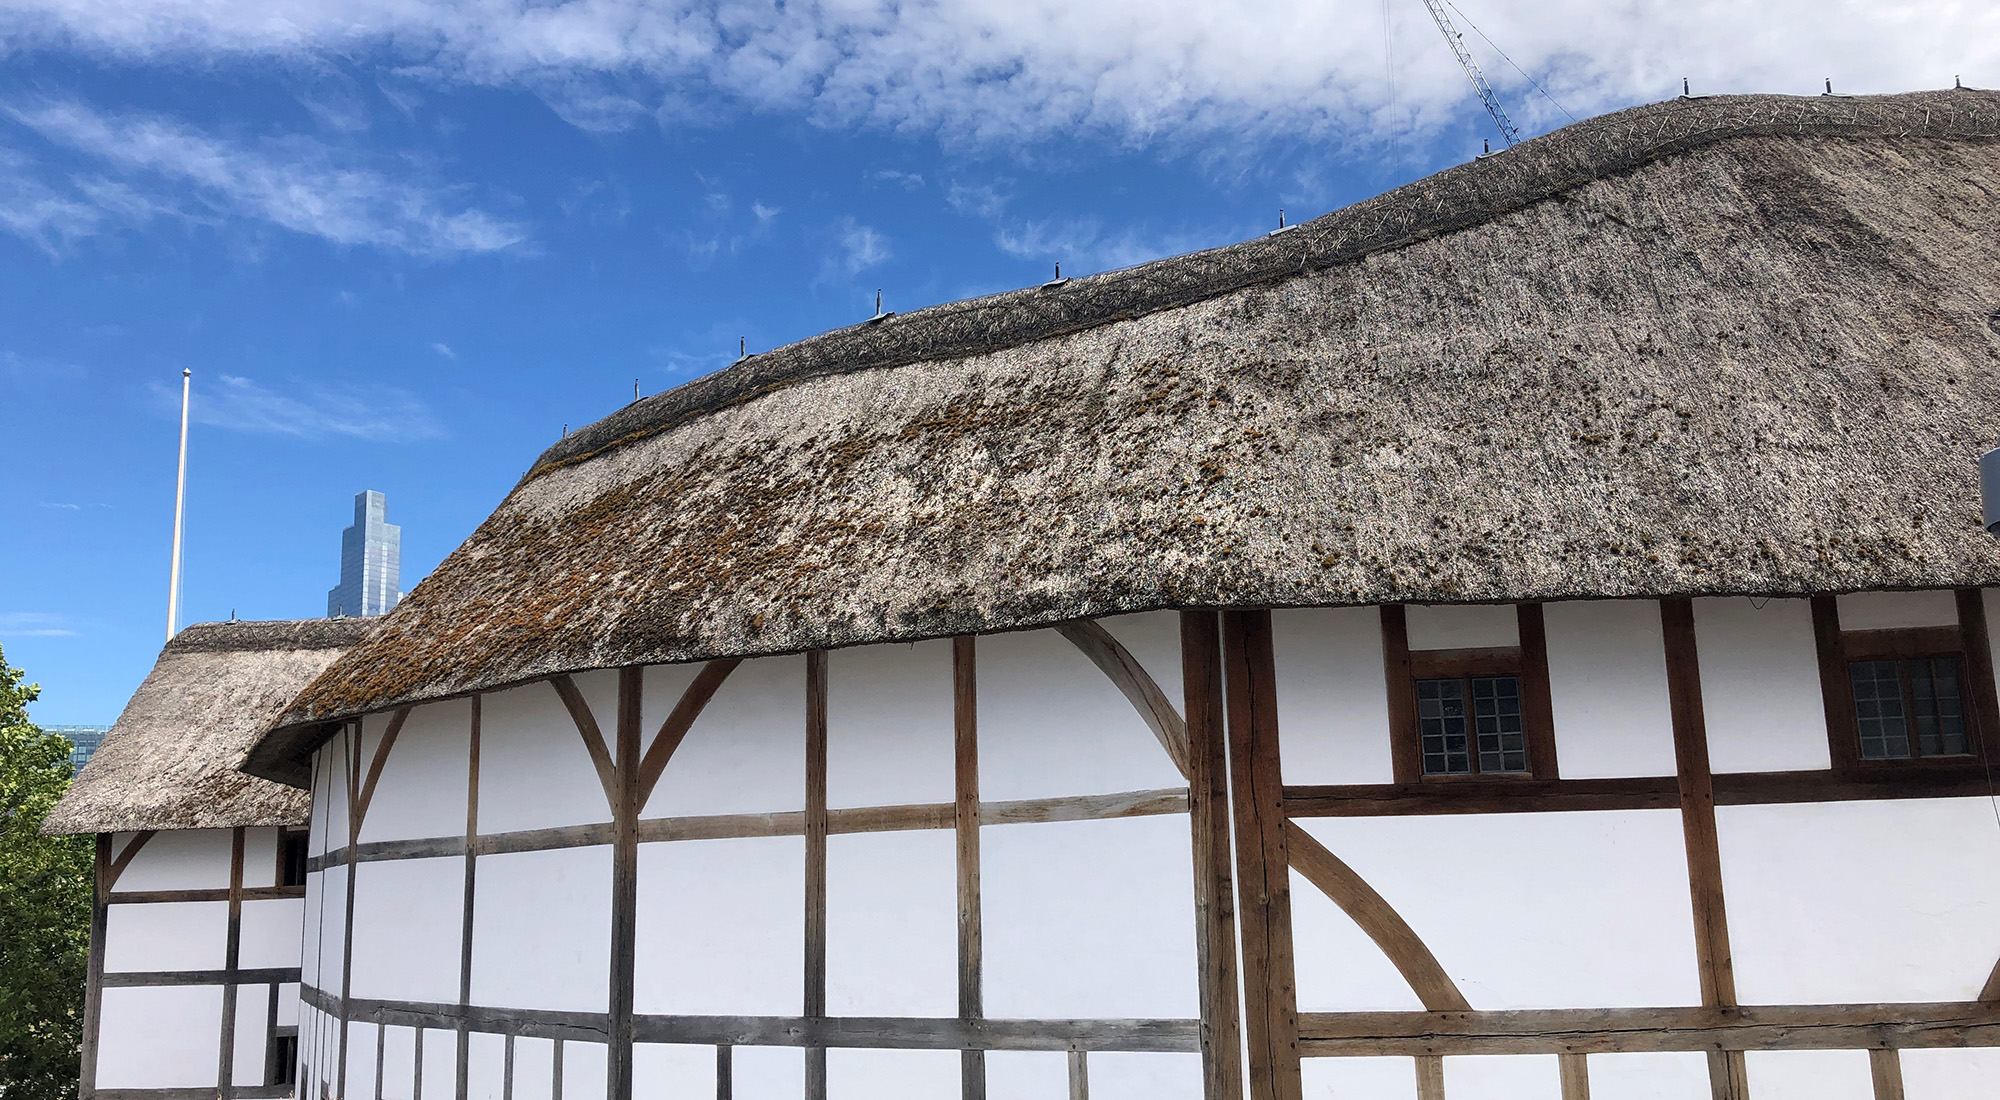 A side view looking at a white wattle and daub theatre, with a blue sky above